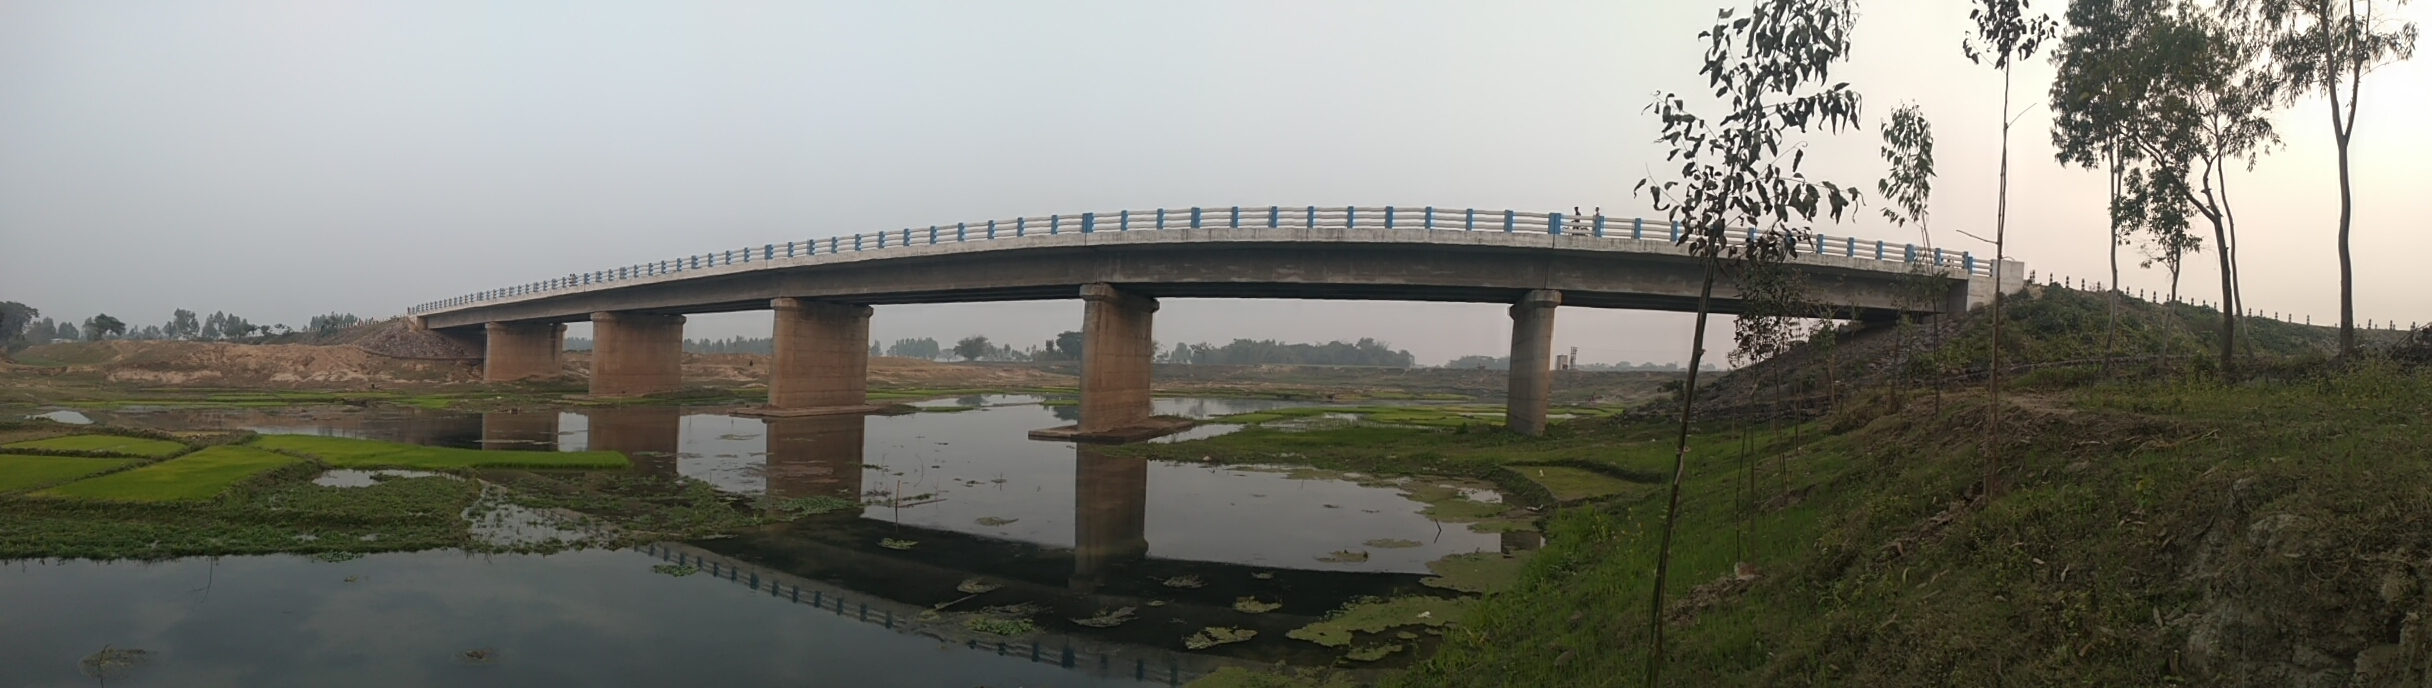 Bridge over river Paharhori pur